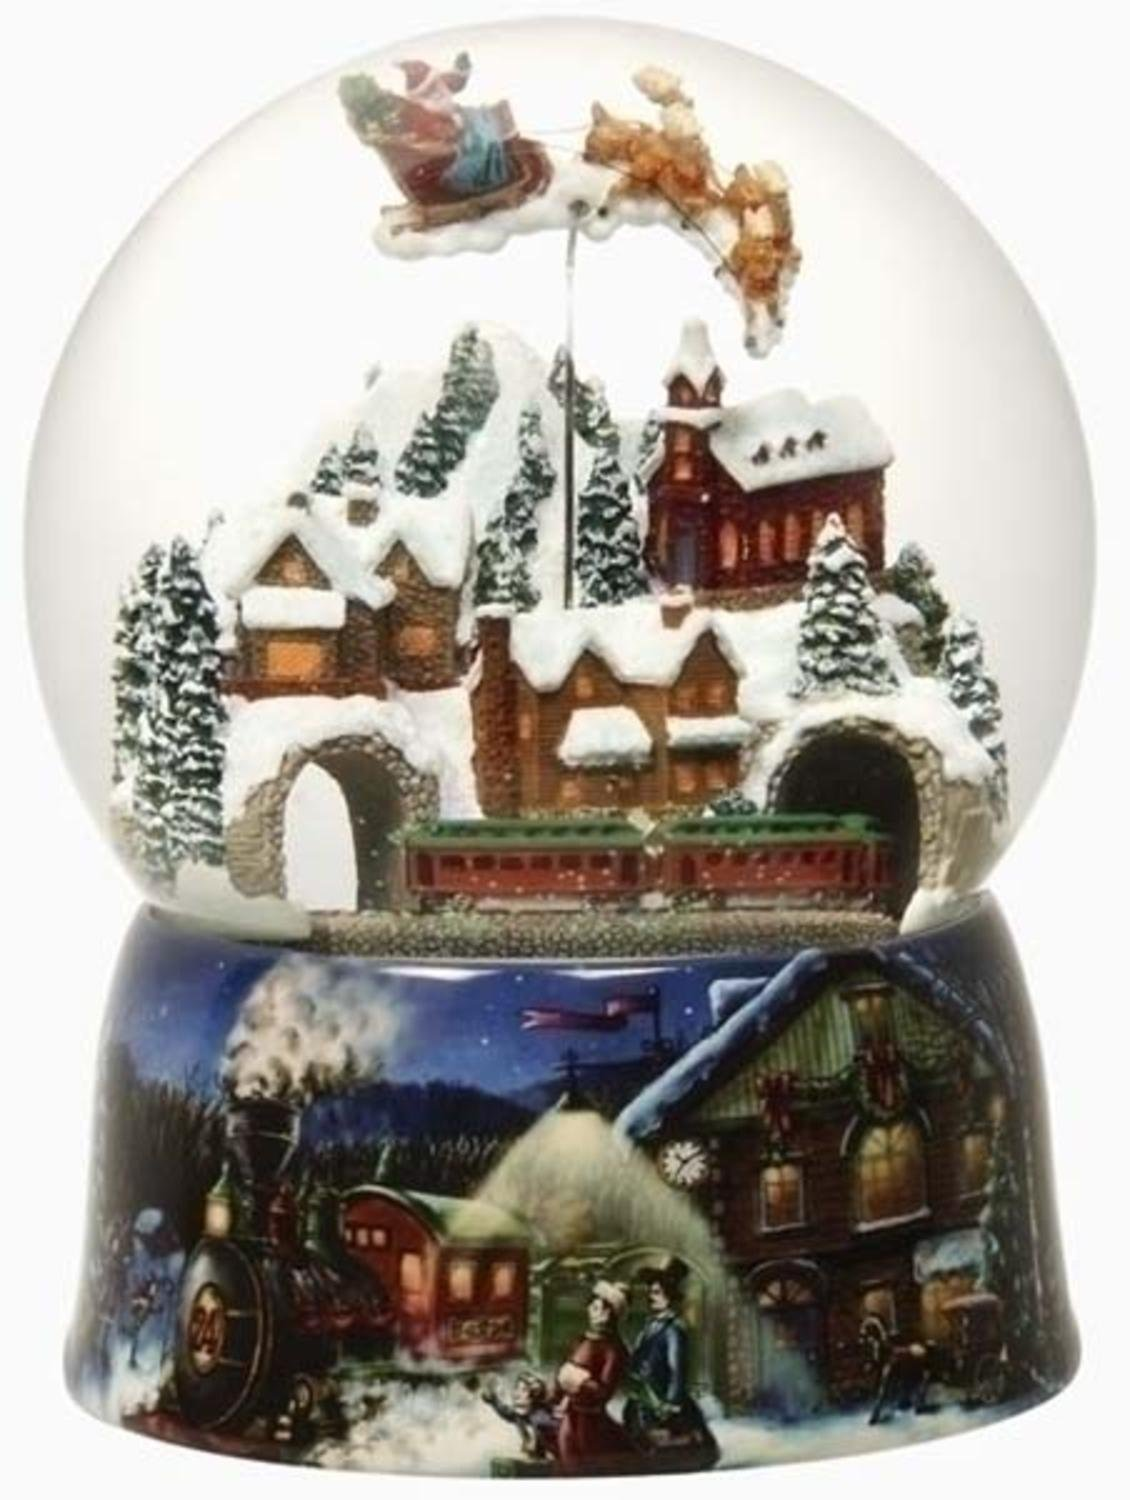 Musical & Animated Victorian Christmas Village Snow Globe Glitterdome by Roman